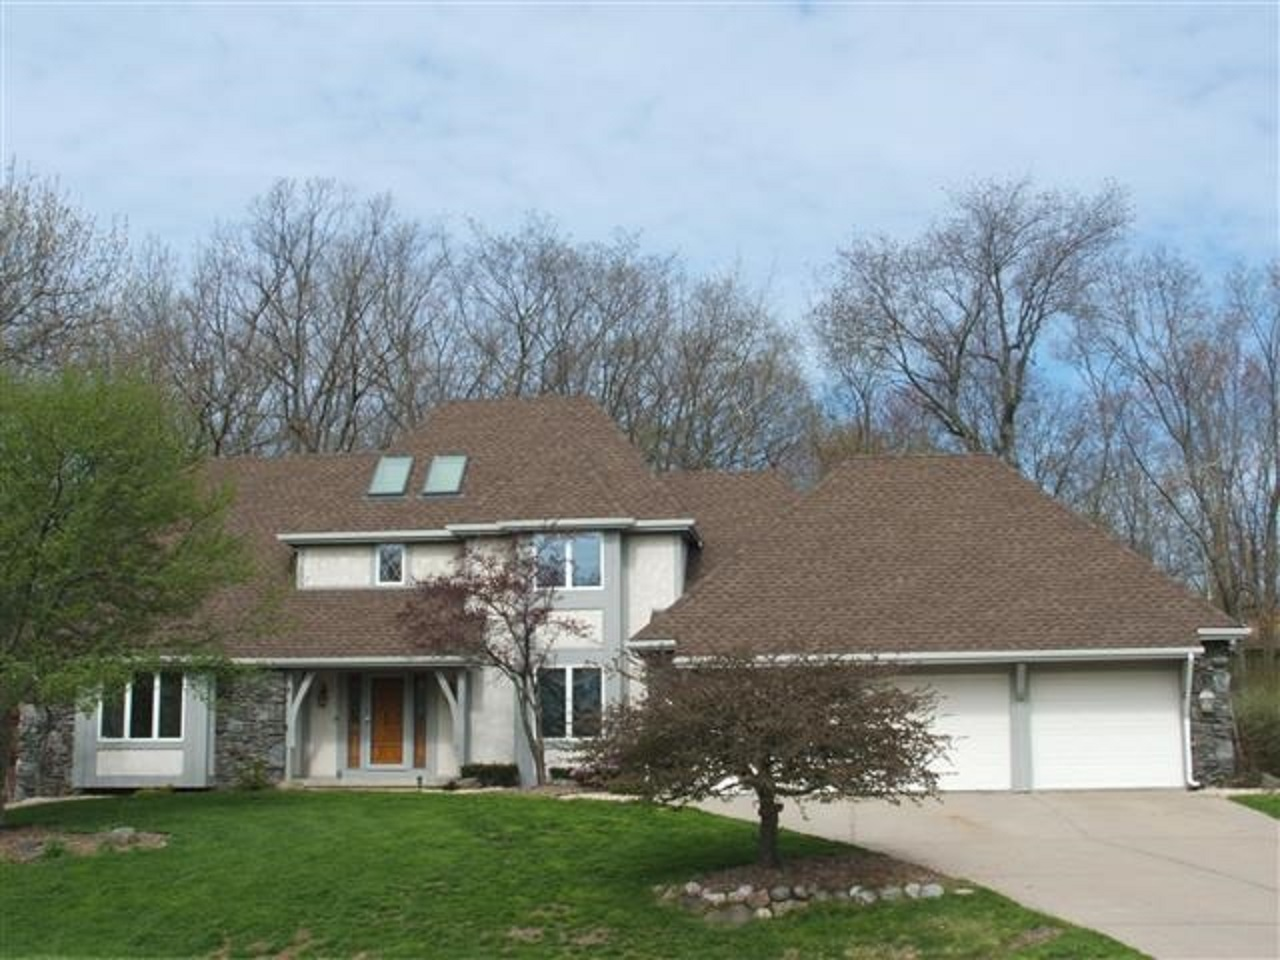 Home sold at 7778 bunbury ct middleton wi 53562 rock realty for Middleton home